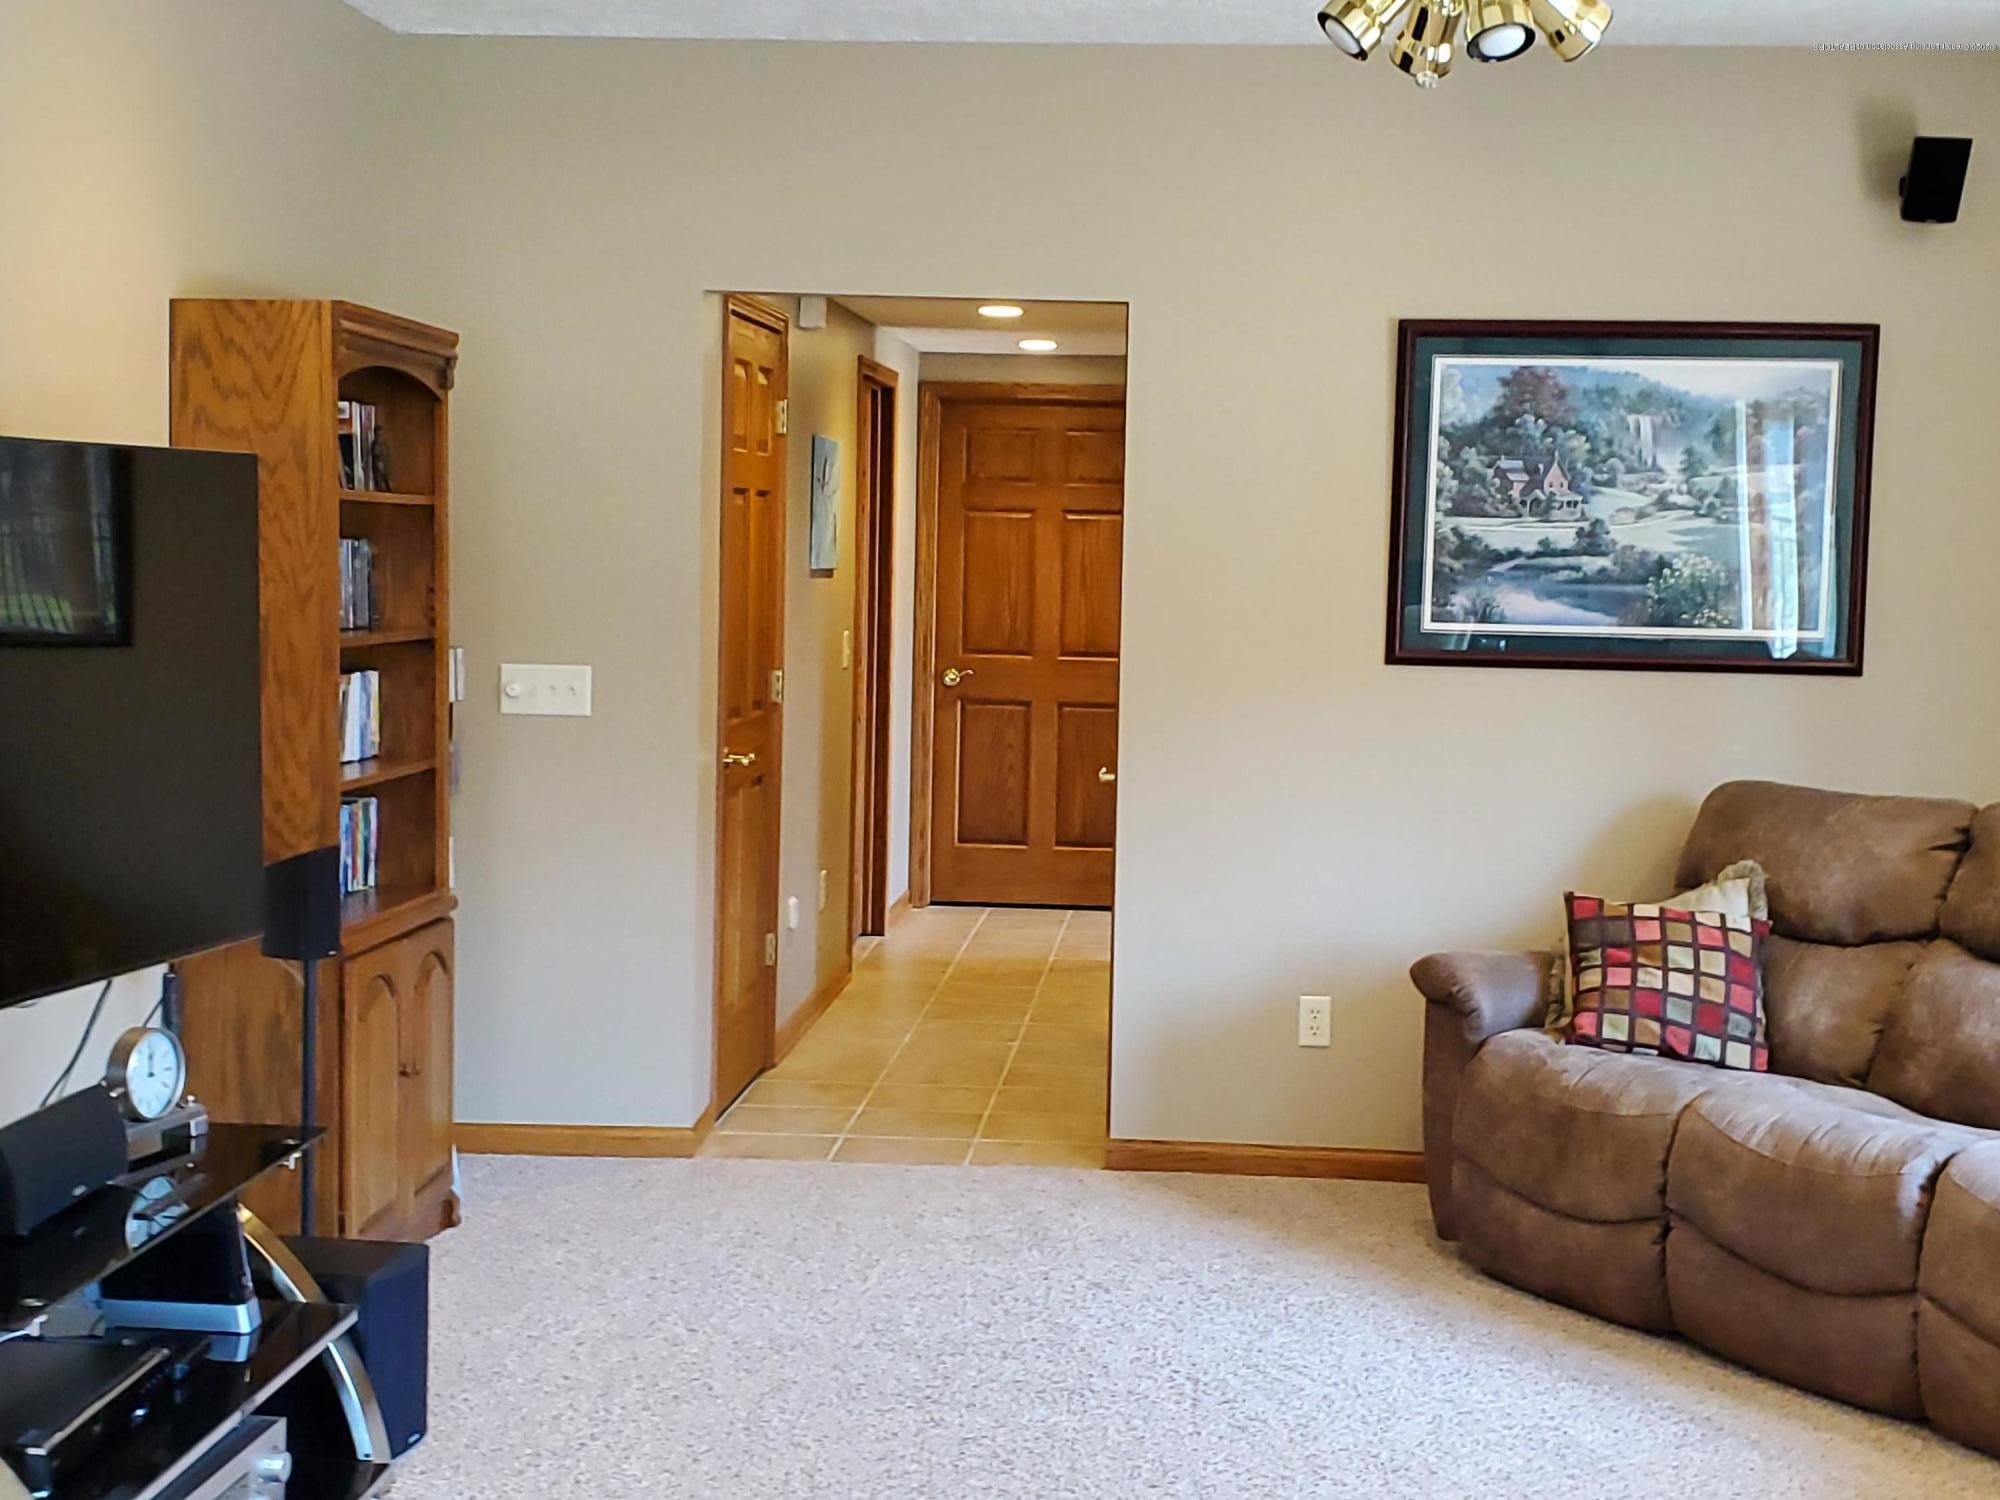 558 N Wheaton Rd - Bedroom 4 - 49